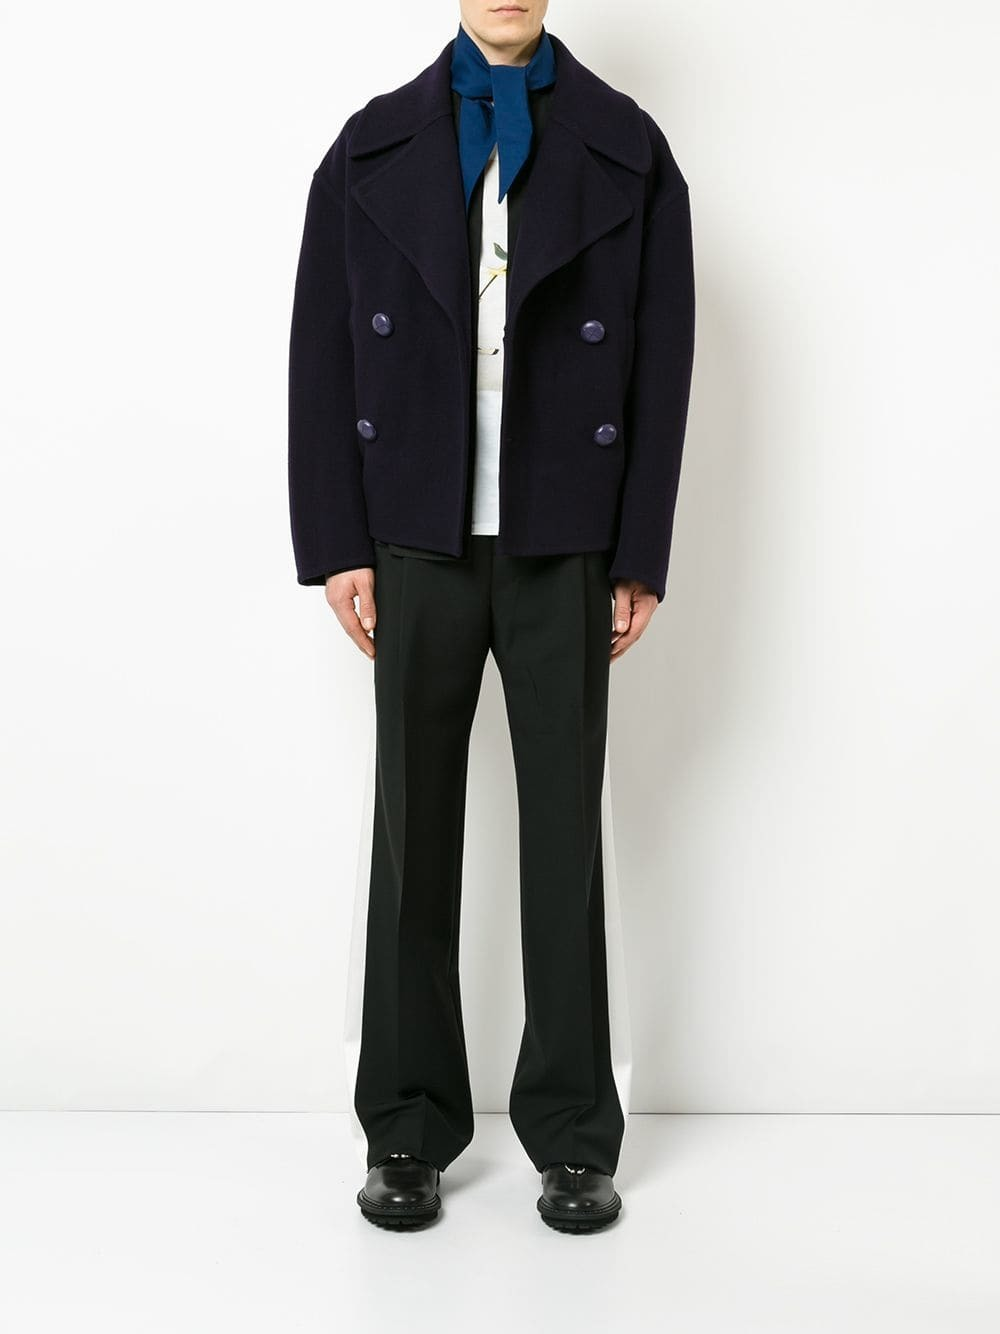 wholesale outlet new york outlet online £856, JW Anderson Oversized Cropped Peacoat